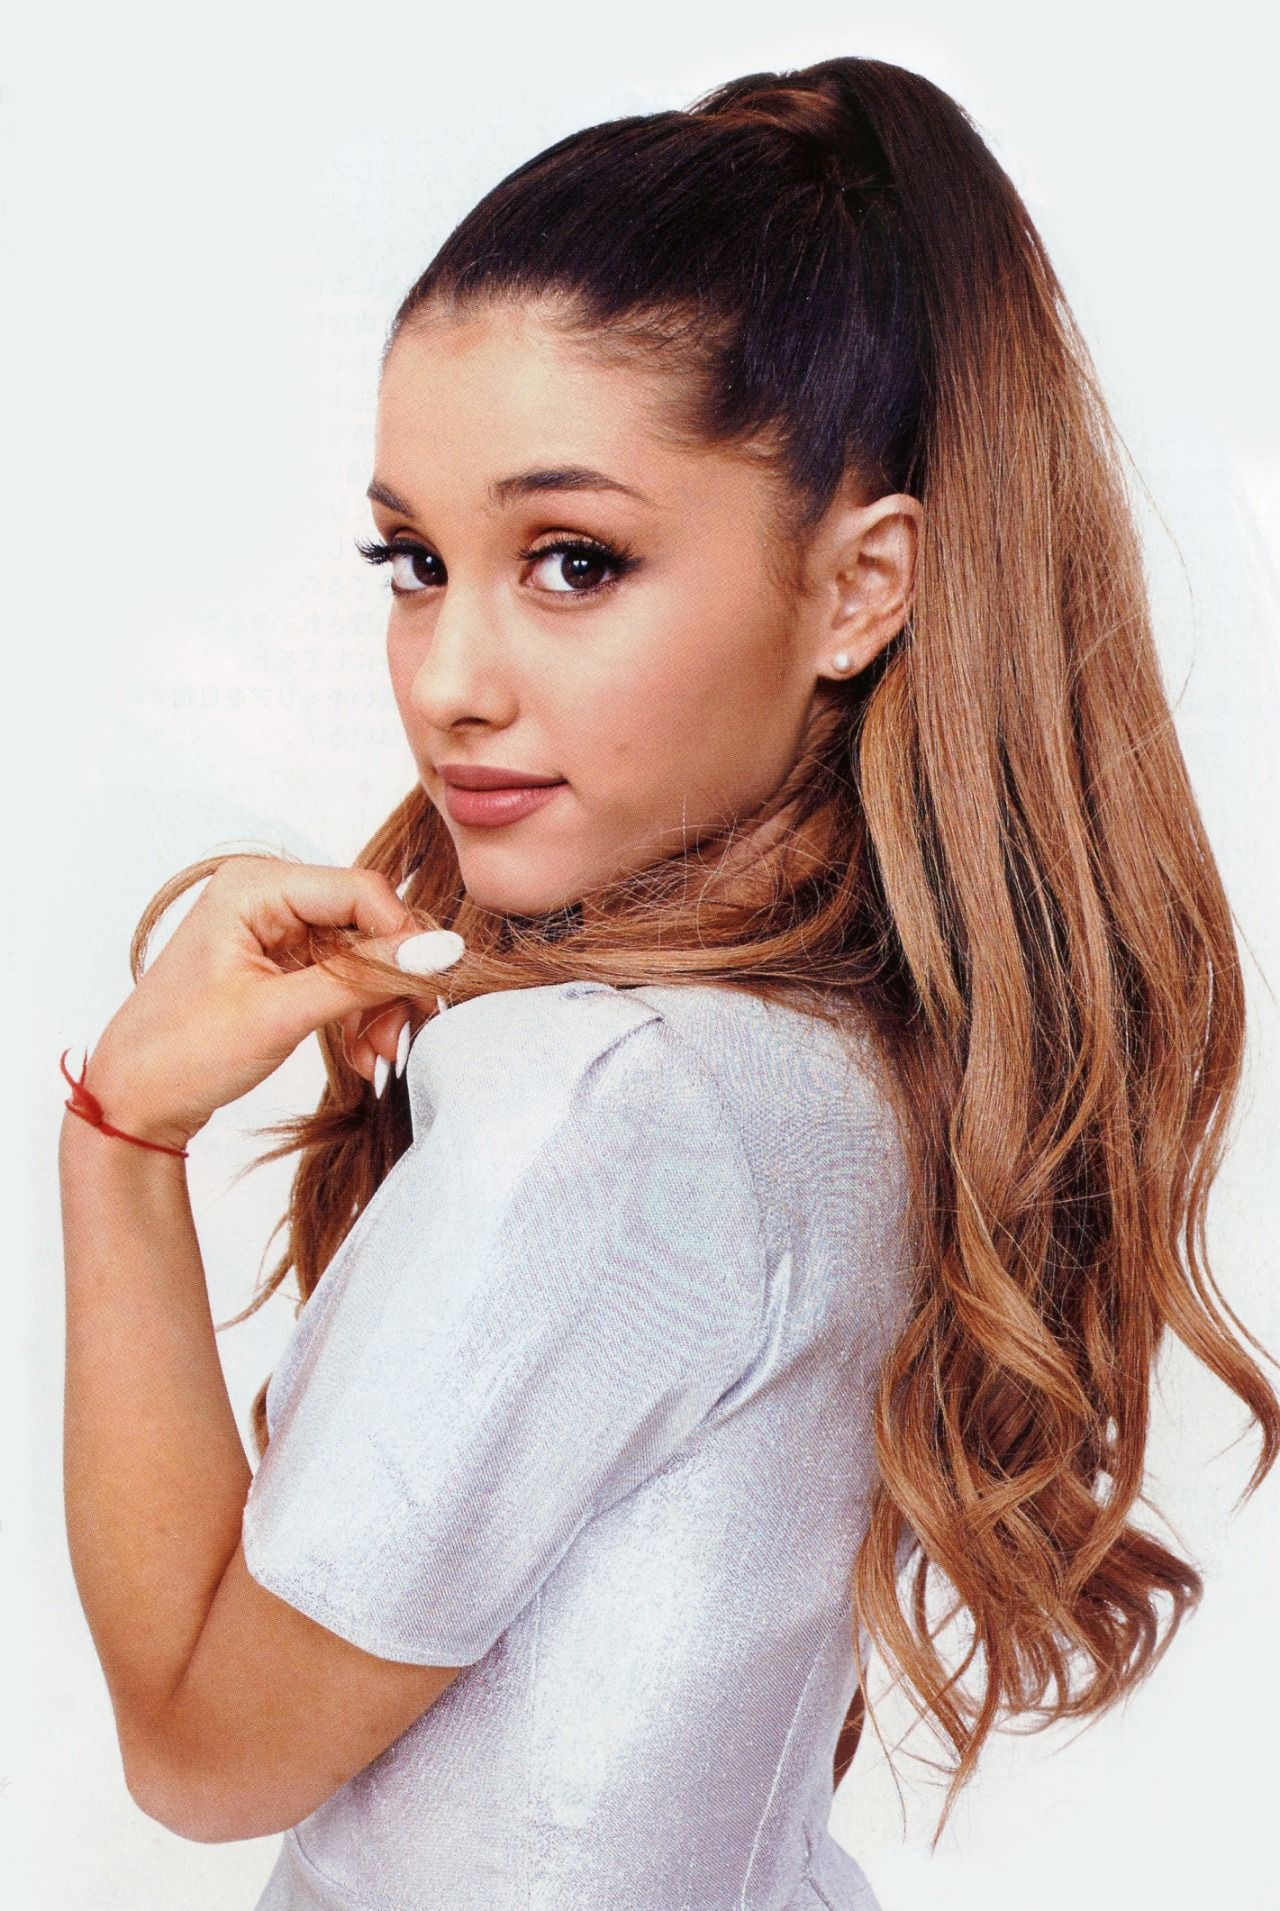 Ariana grande iphone wallpapers voltagebd Image collections